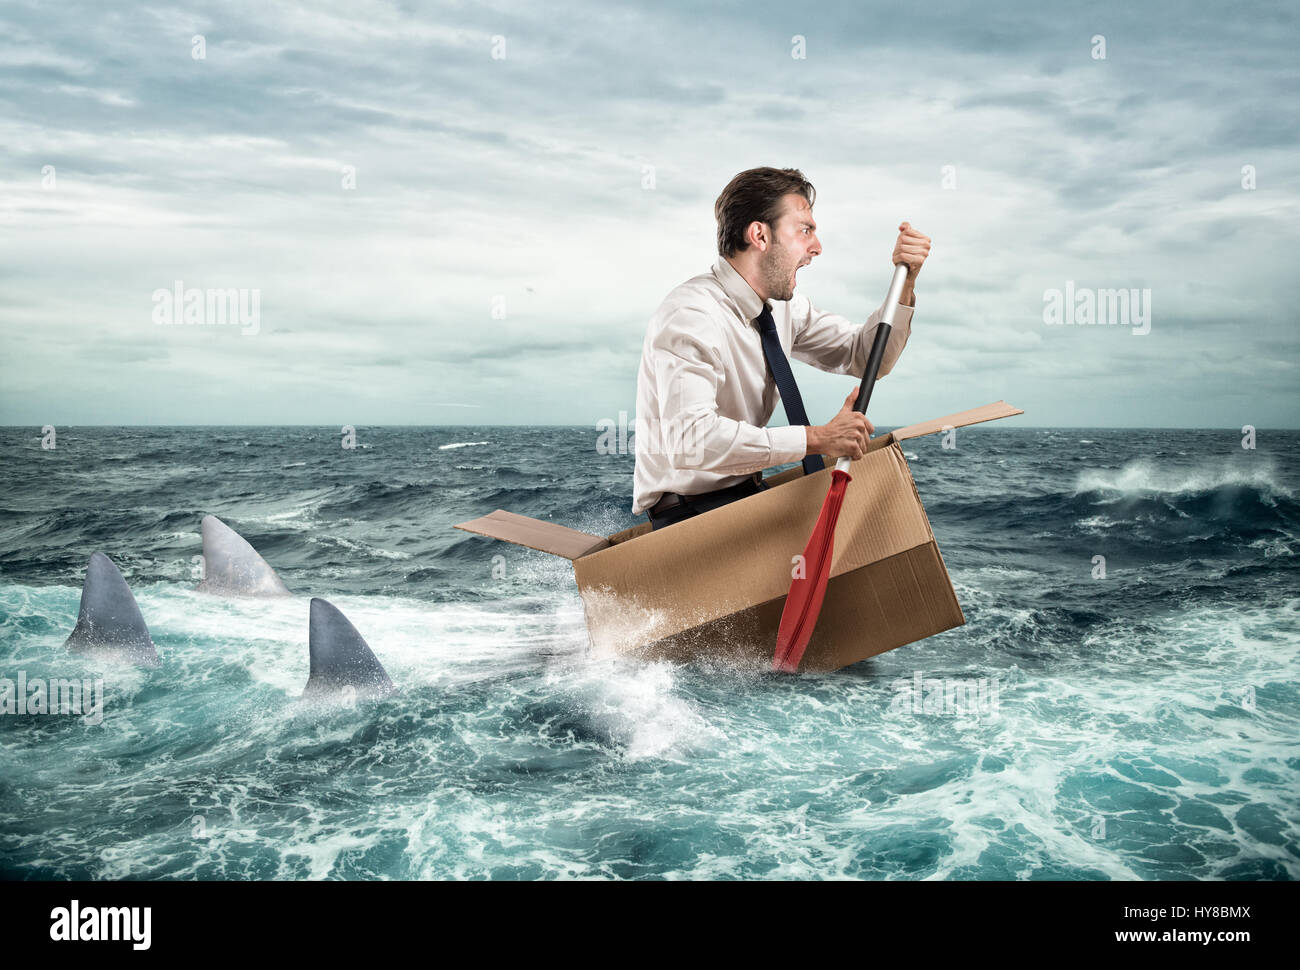 Escape from crisis - Stock Image